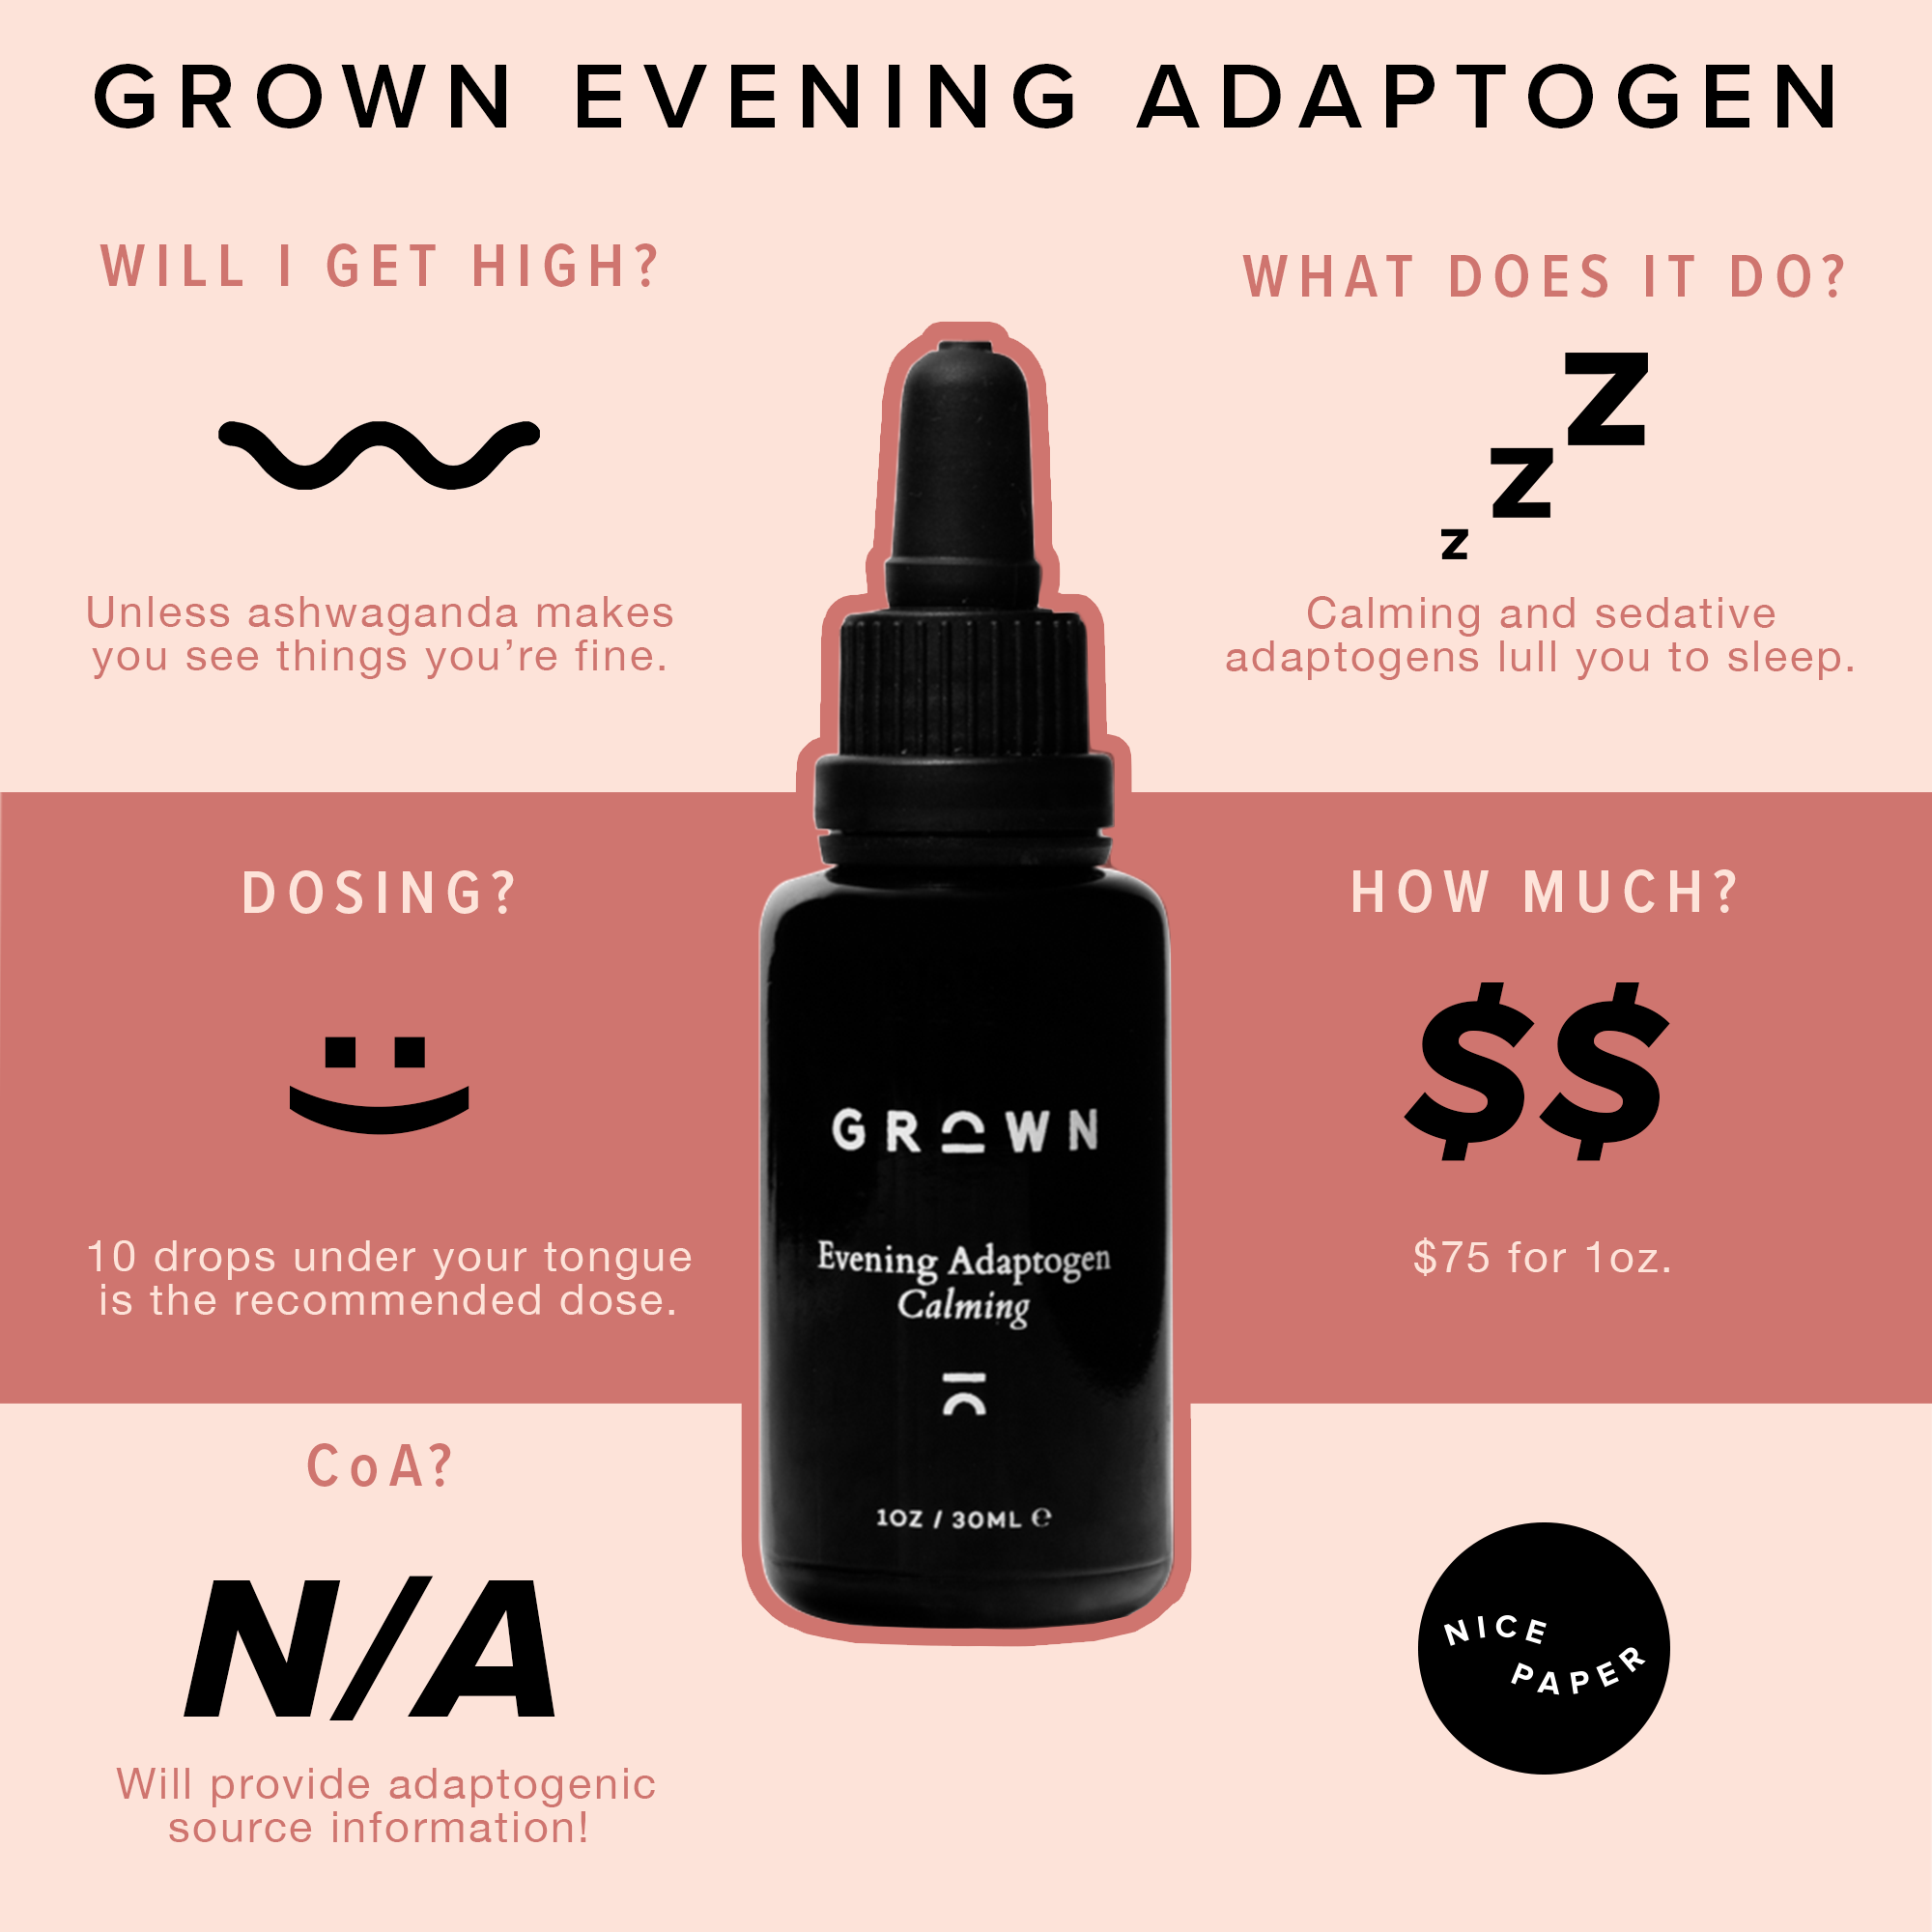 Grown Evening Adaptogen - It might seem strange to start a CBD list with a tincture that doesn't contain any CBD but it is an incredible example of how plants beyond cannabis can be powerful. Their Evening Adaptogen has a mix of adaptogens including ashwaganda, brahmi, goji, lemon balm, oyster mushroom, passion flower and reishi mushroom. I once made the mistake of taking this during a particularly stressful day and found myself asleep and drooling on a communal workspace couch so only take to doze off at night or when you're ready to chill TF out.